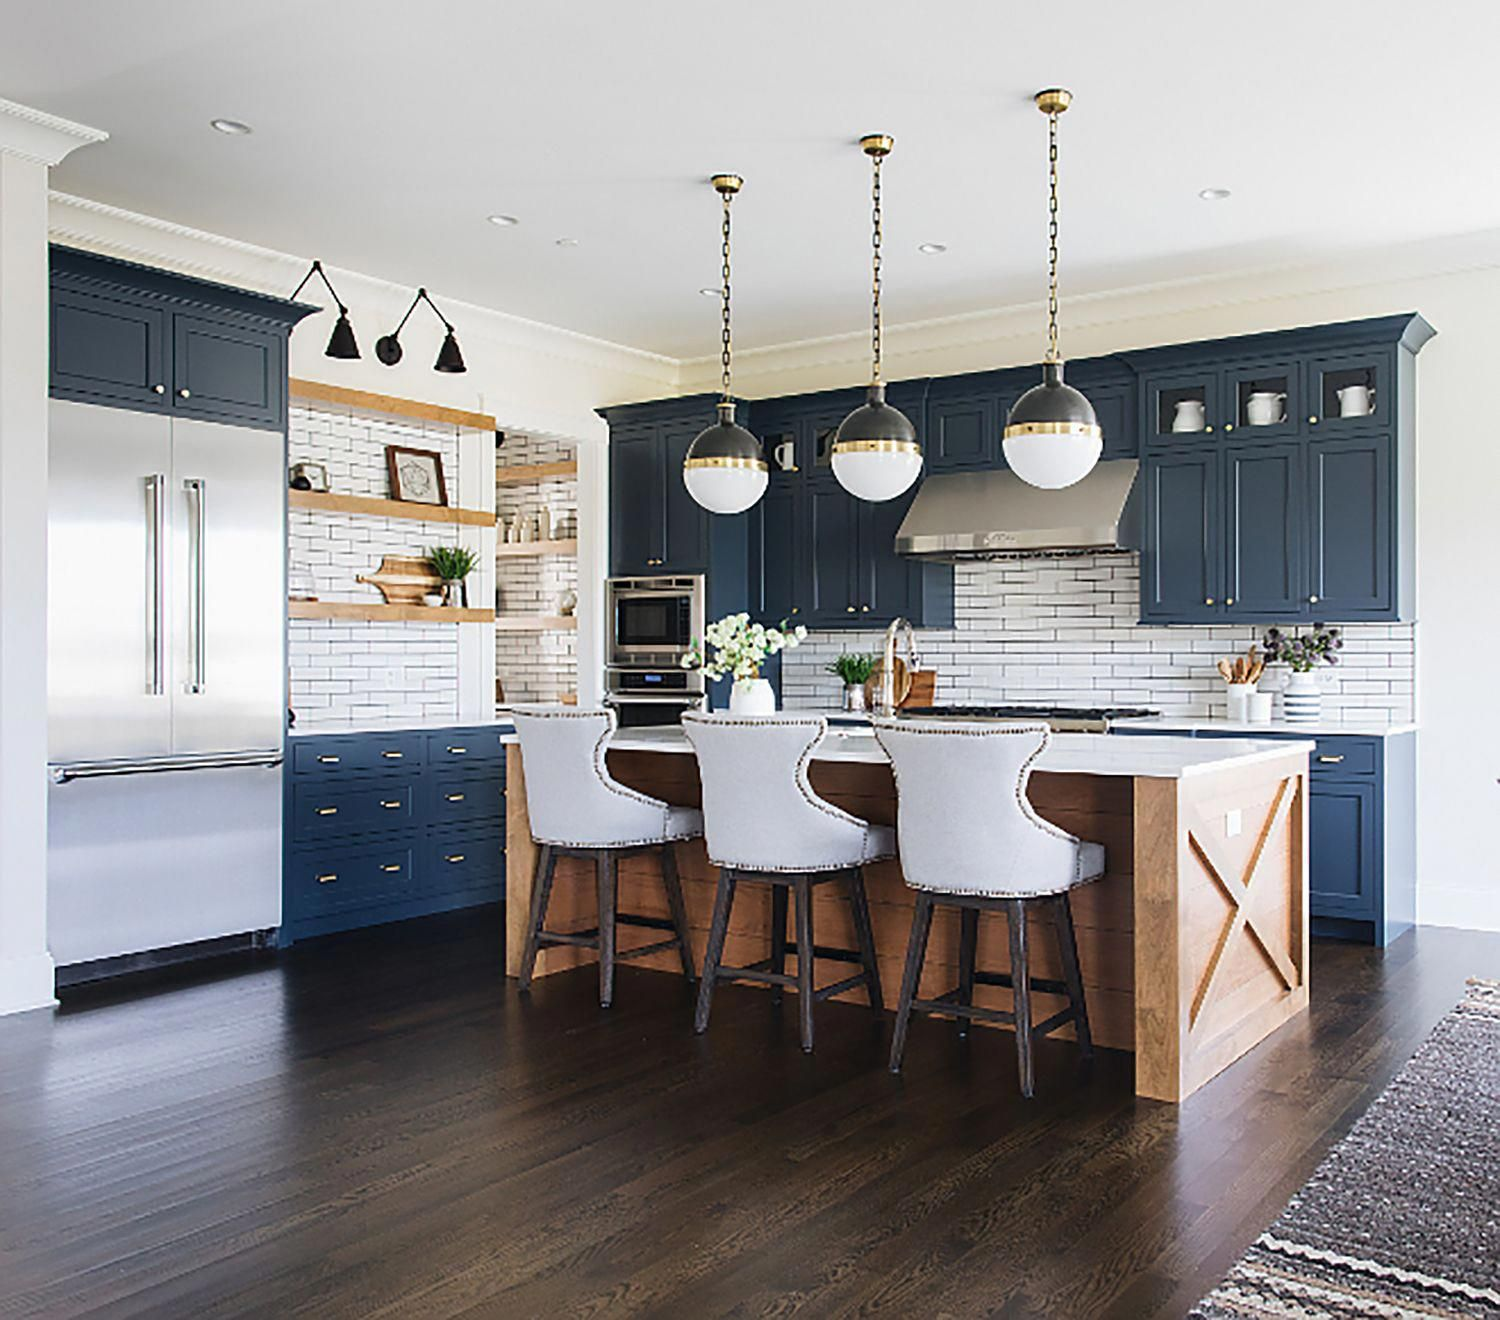 Renovate and relook kitchen shelves (With images